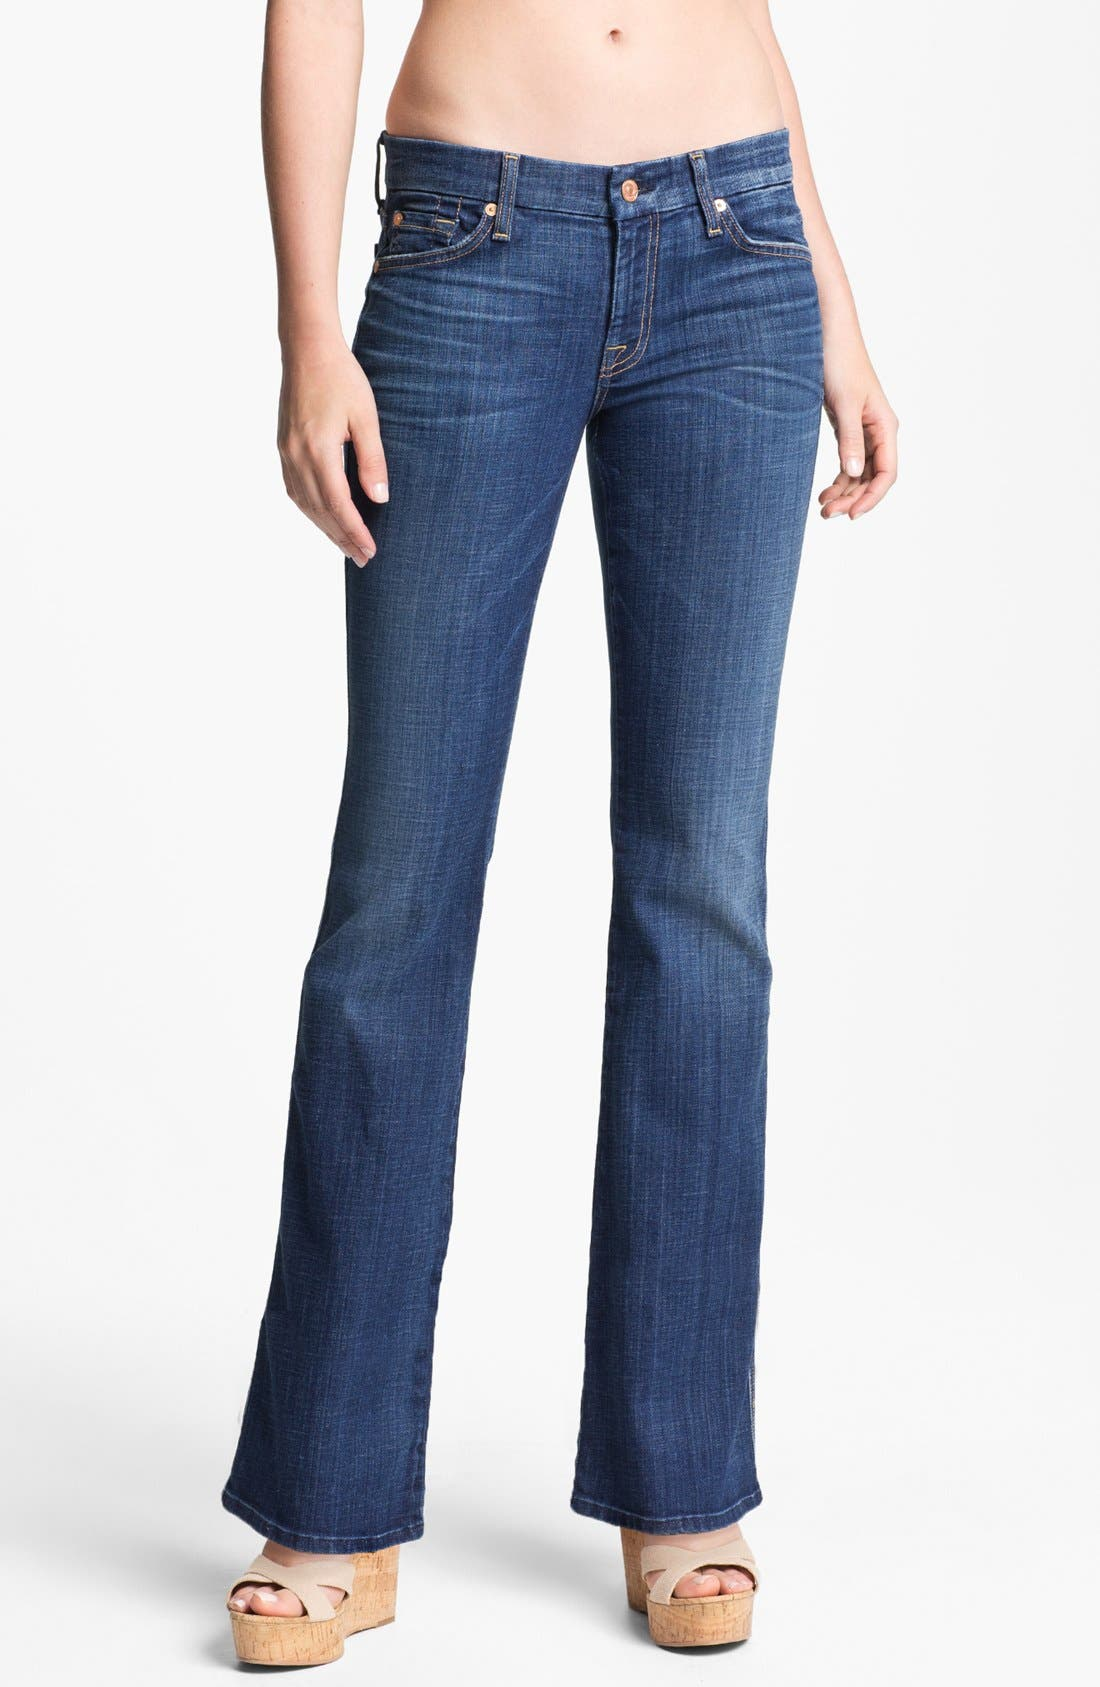 Main Image - 7 For All Mankind® 'Lexie A' Jeans (Washed Medium Indigo) (Petite)